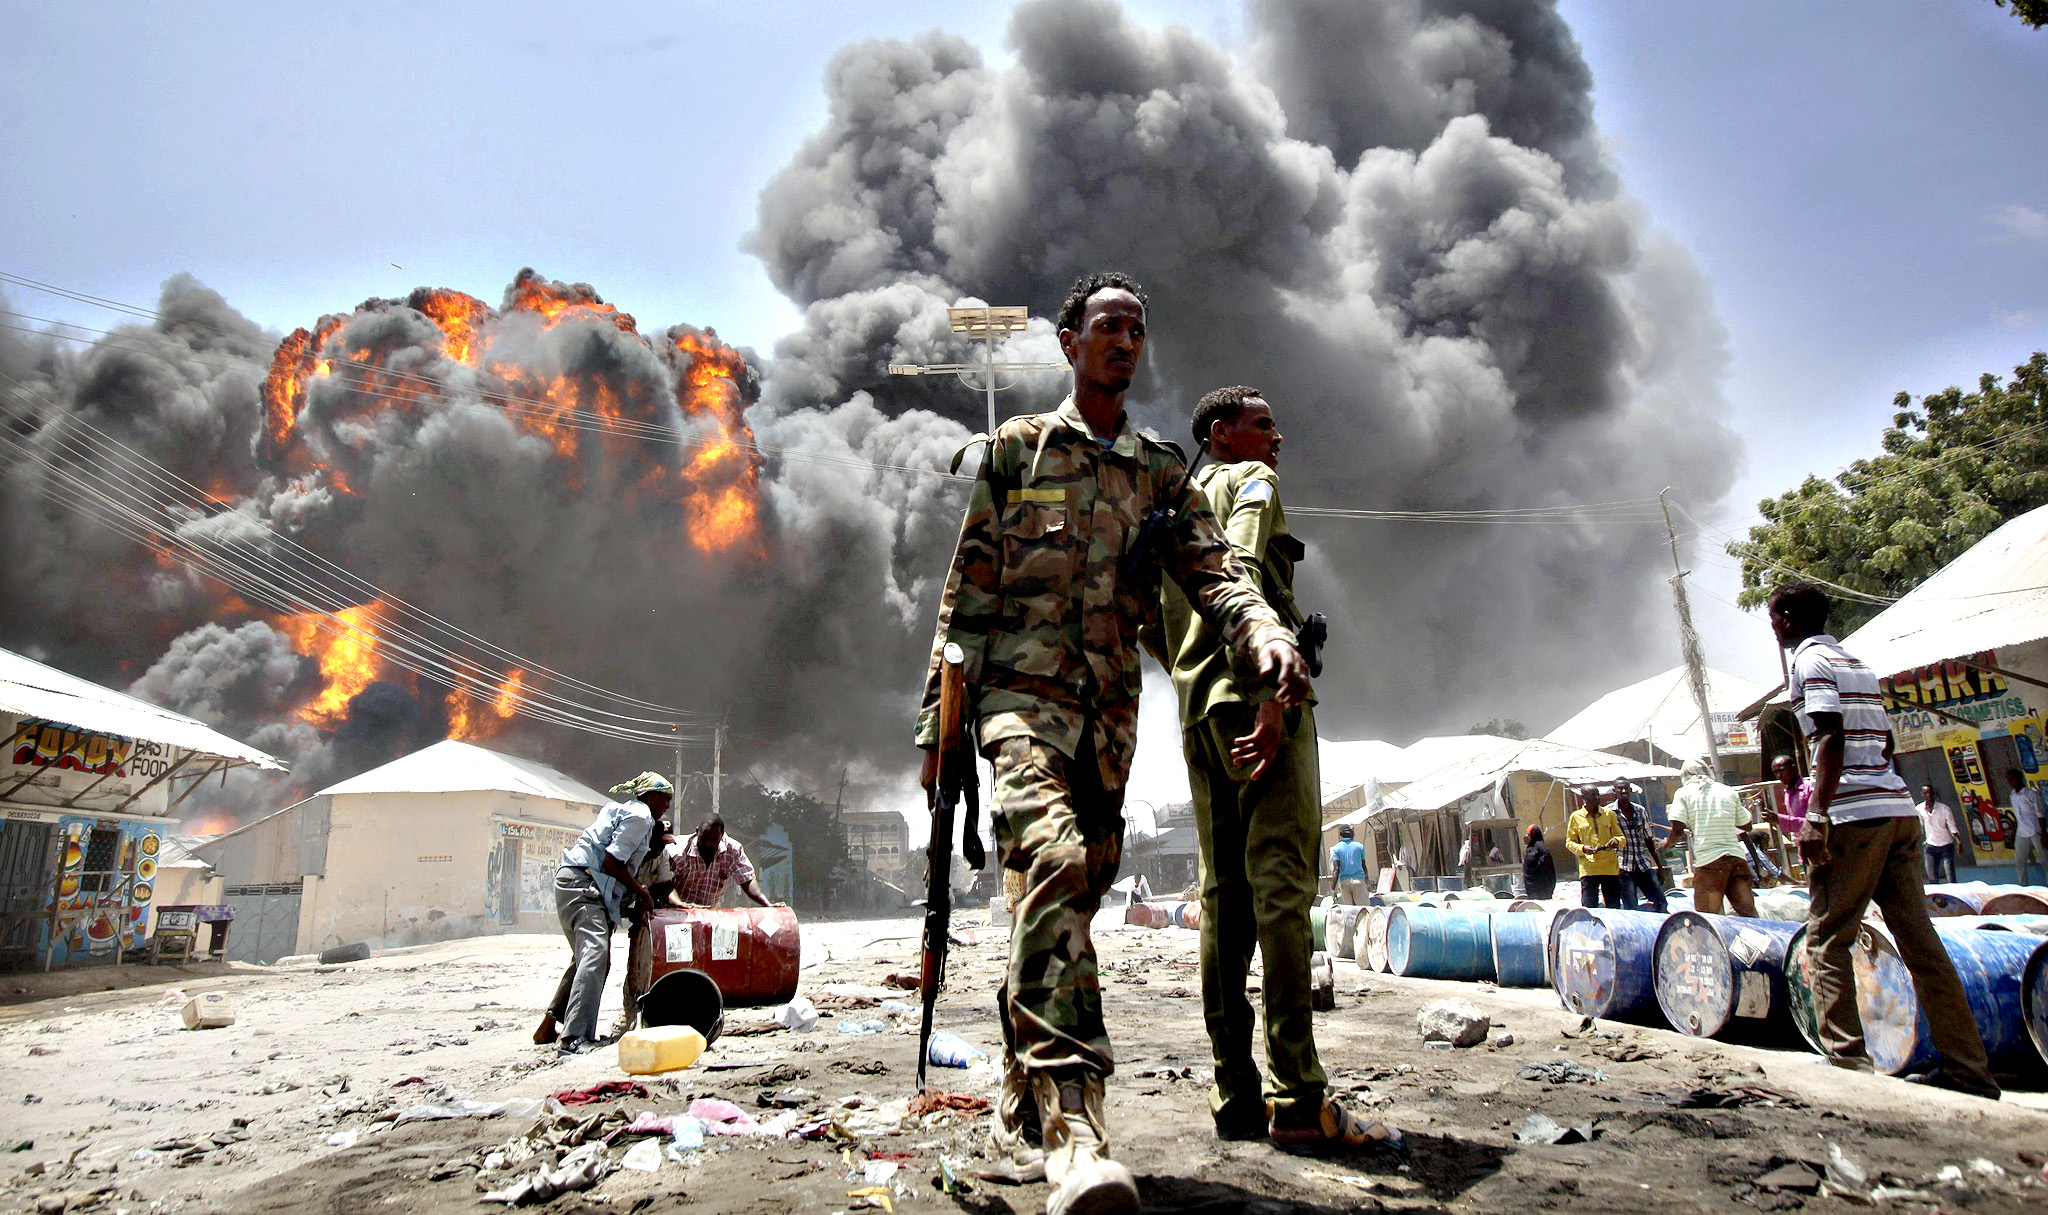 Soldiers watch as people move oil barrels away from the site of an explosion at a petrol station and storage facility near the Bakara open-air market in Mogadishu...Soldiers watch as people move oil barrels away from the site of an explosion at a petrol station and storage facility near the Bakara open-air market in Somalia's capital Mogadishu, February 23, 2015.